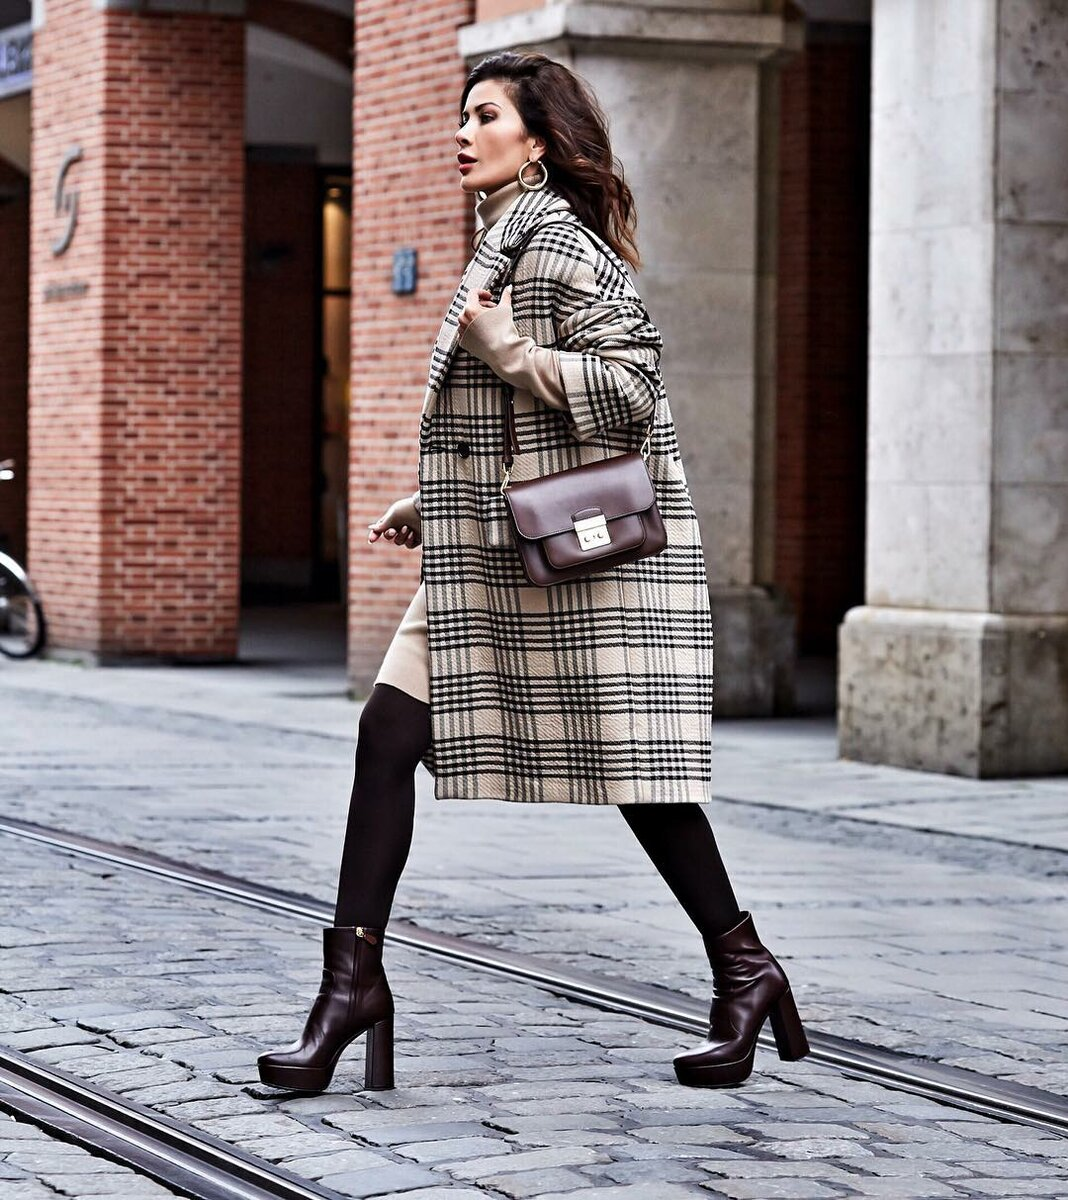 How to choose the perfect coat for autumn: read the labels